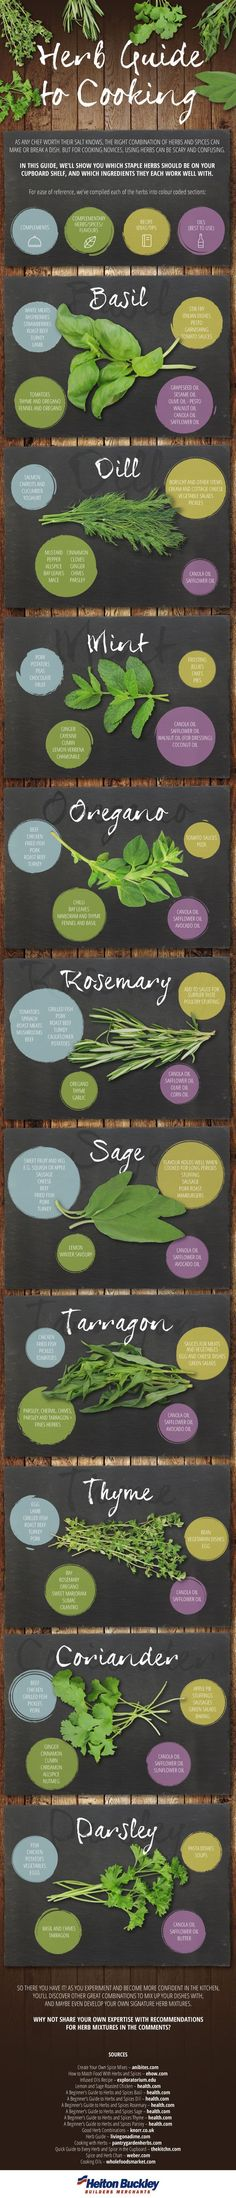 Herb Guide to Cooking #cookingtips #herbs